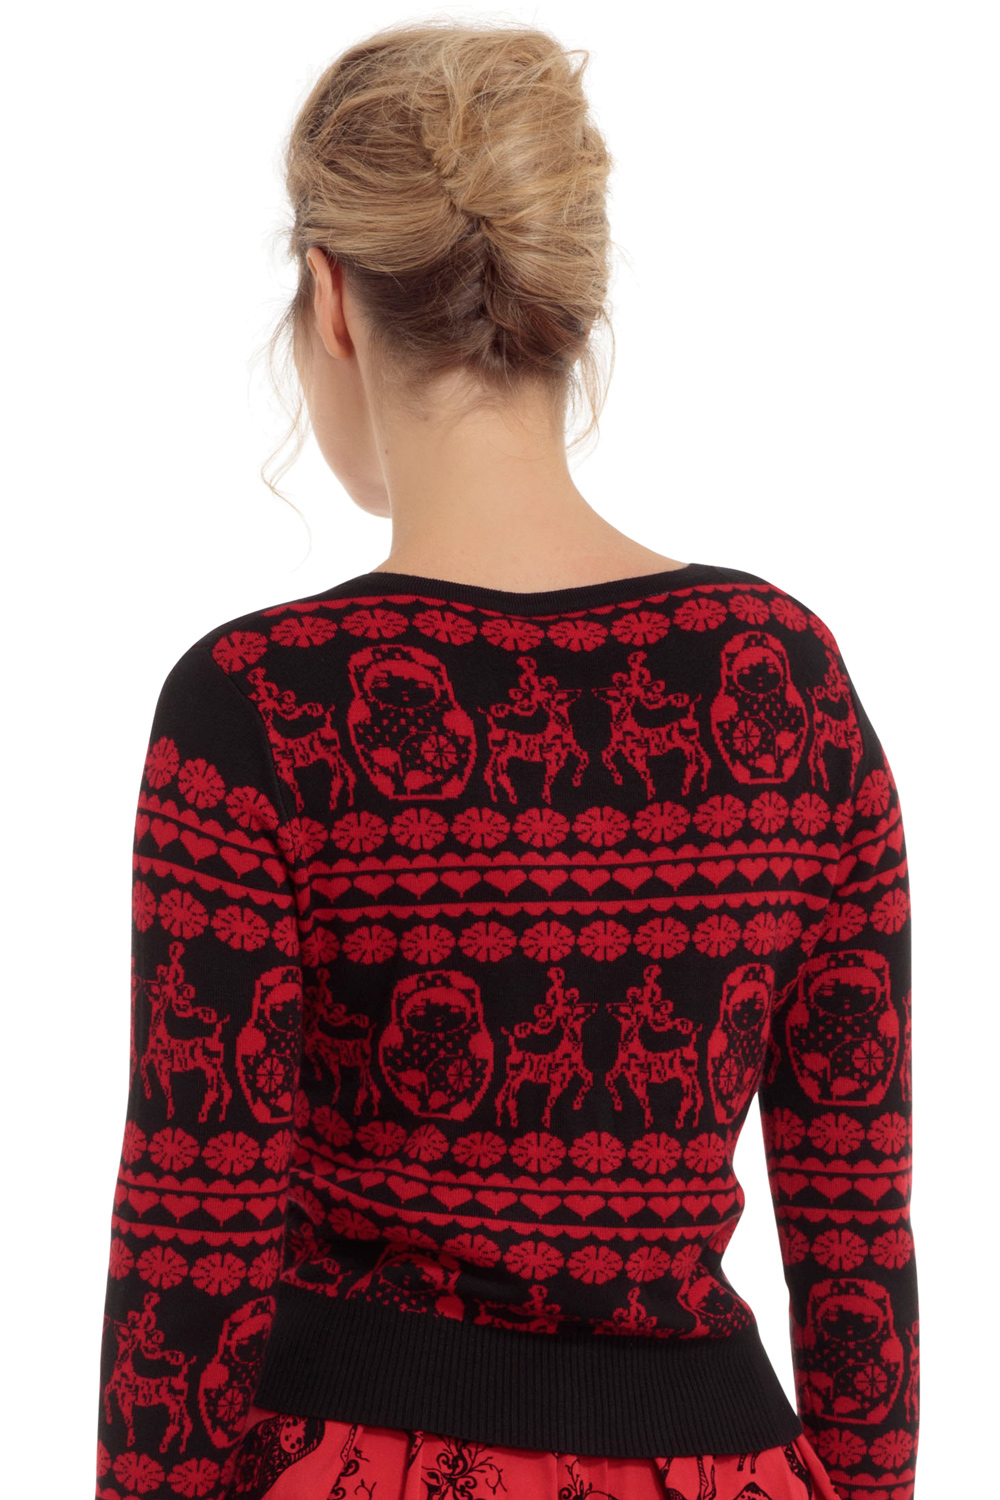 Tess Nesting Doll and Reindeer Cardigan